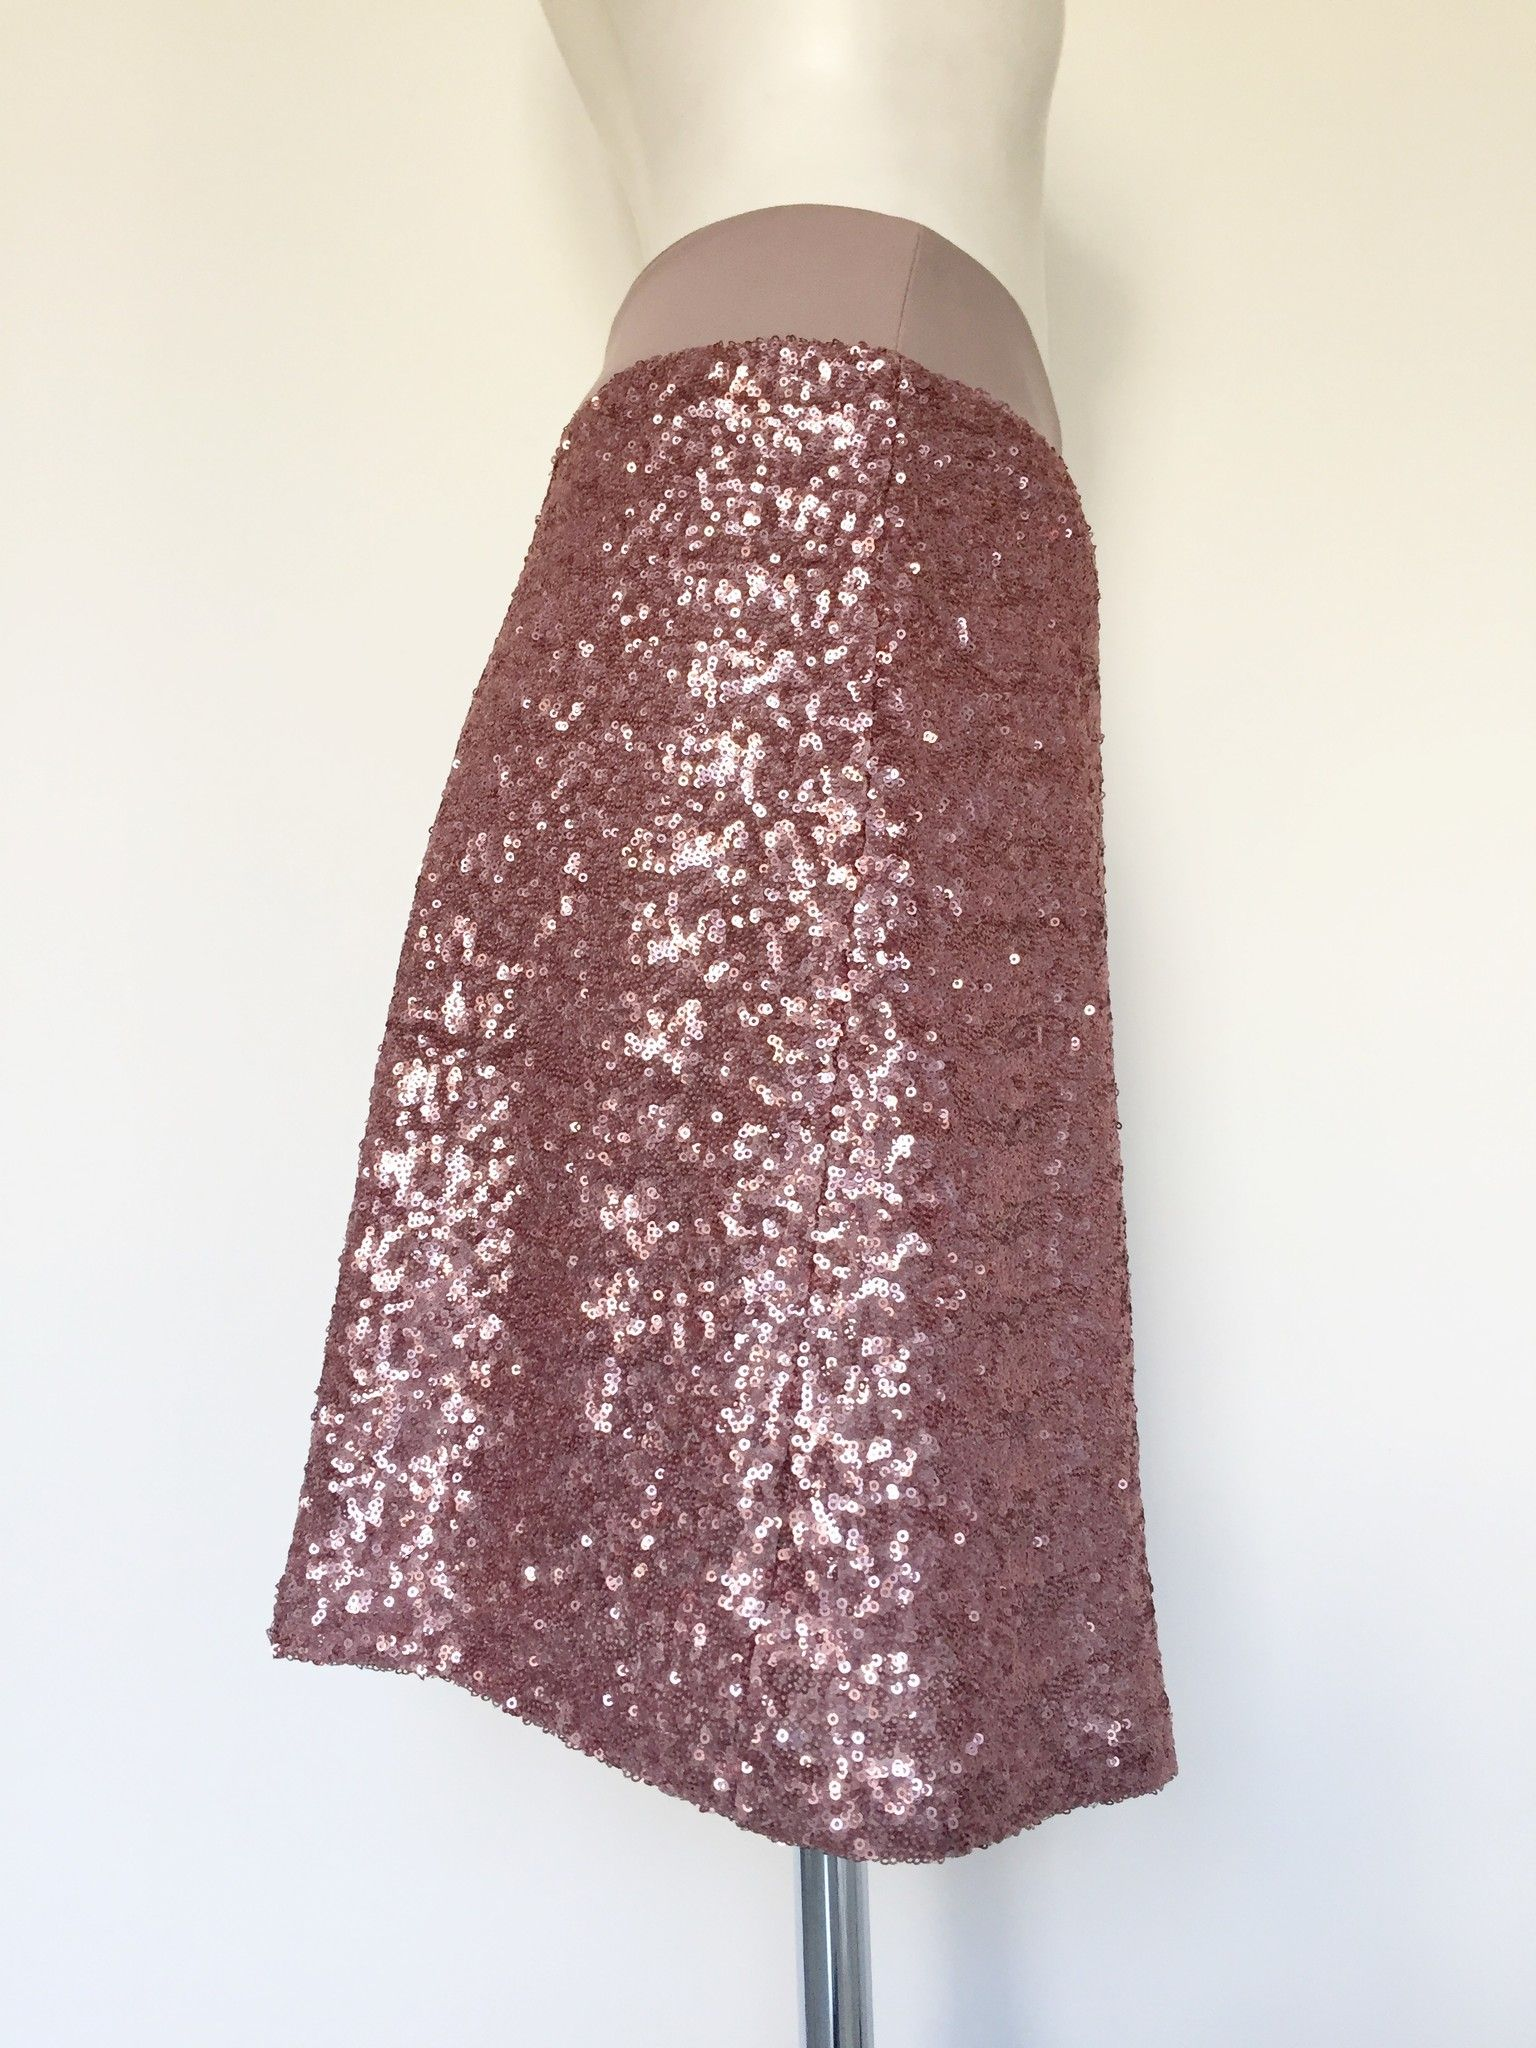 Manu Palmi Skirt with Paillettes Cod.E158